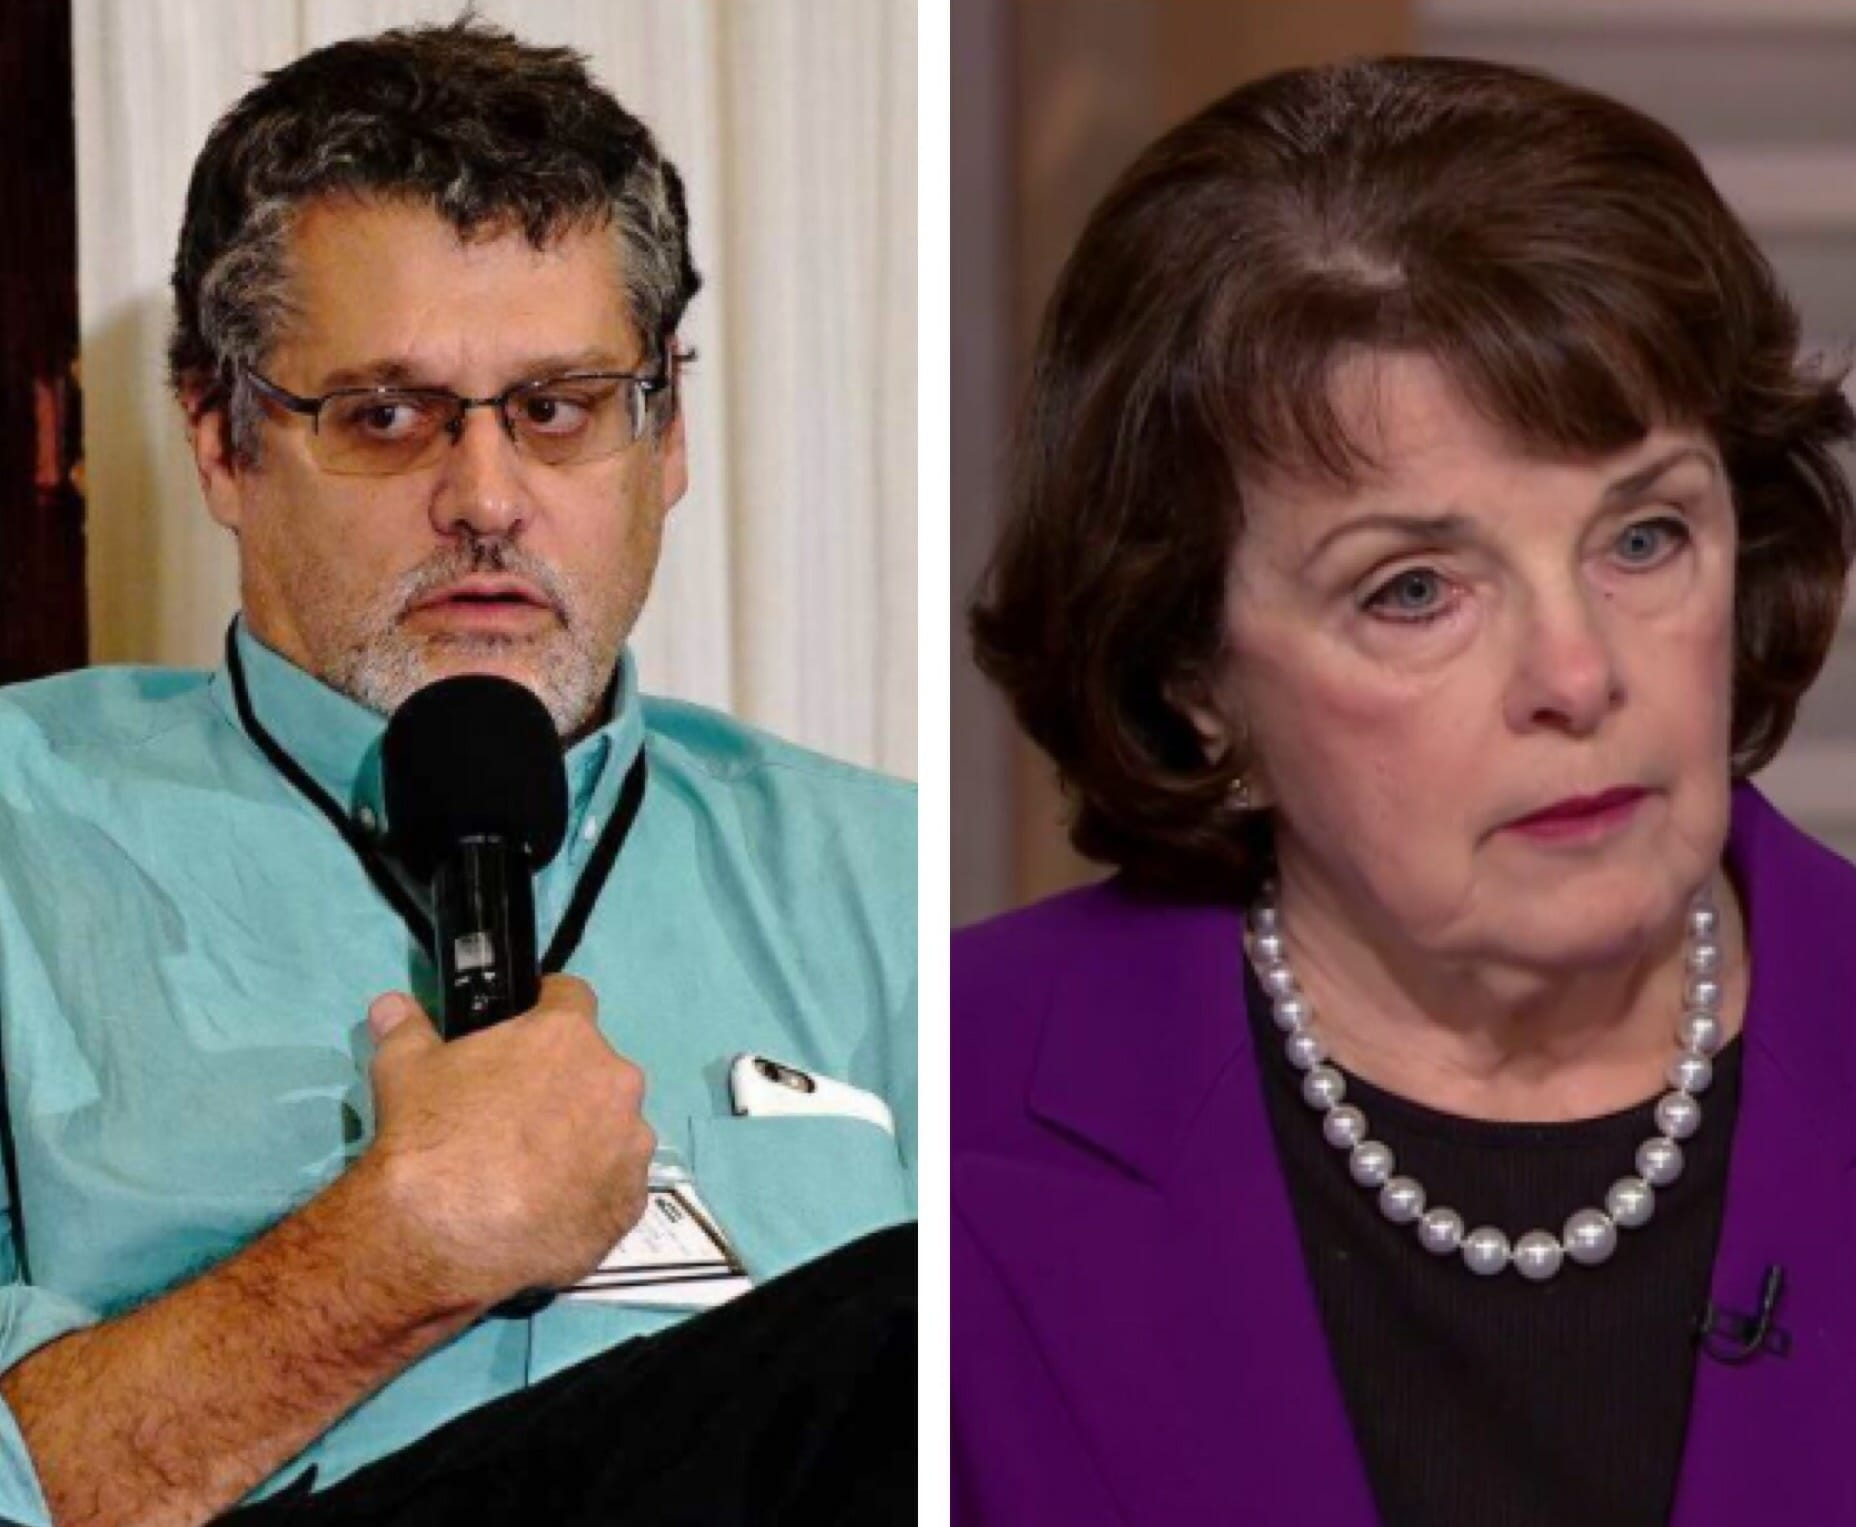 photo image Sneaky Dianne Feinstein Confirms She Leaked Glenn Simpson Transcript at the Request of Fusion GPS's Lawyers